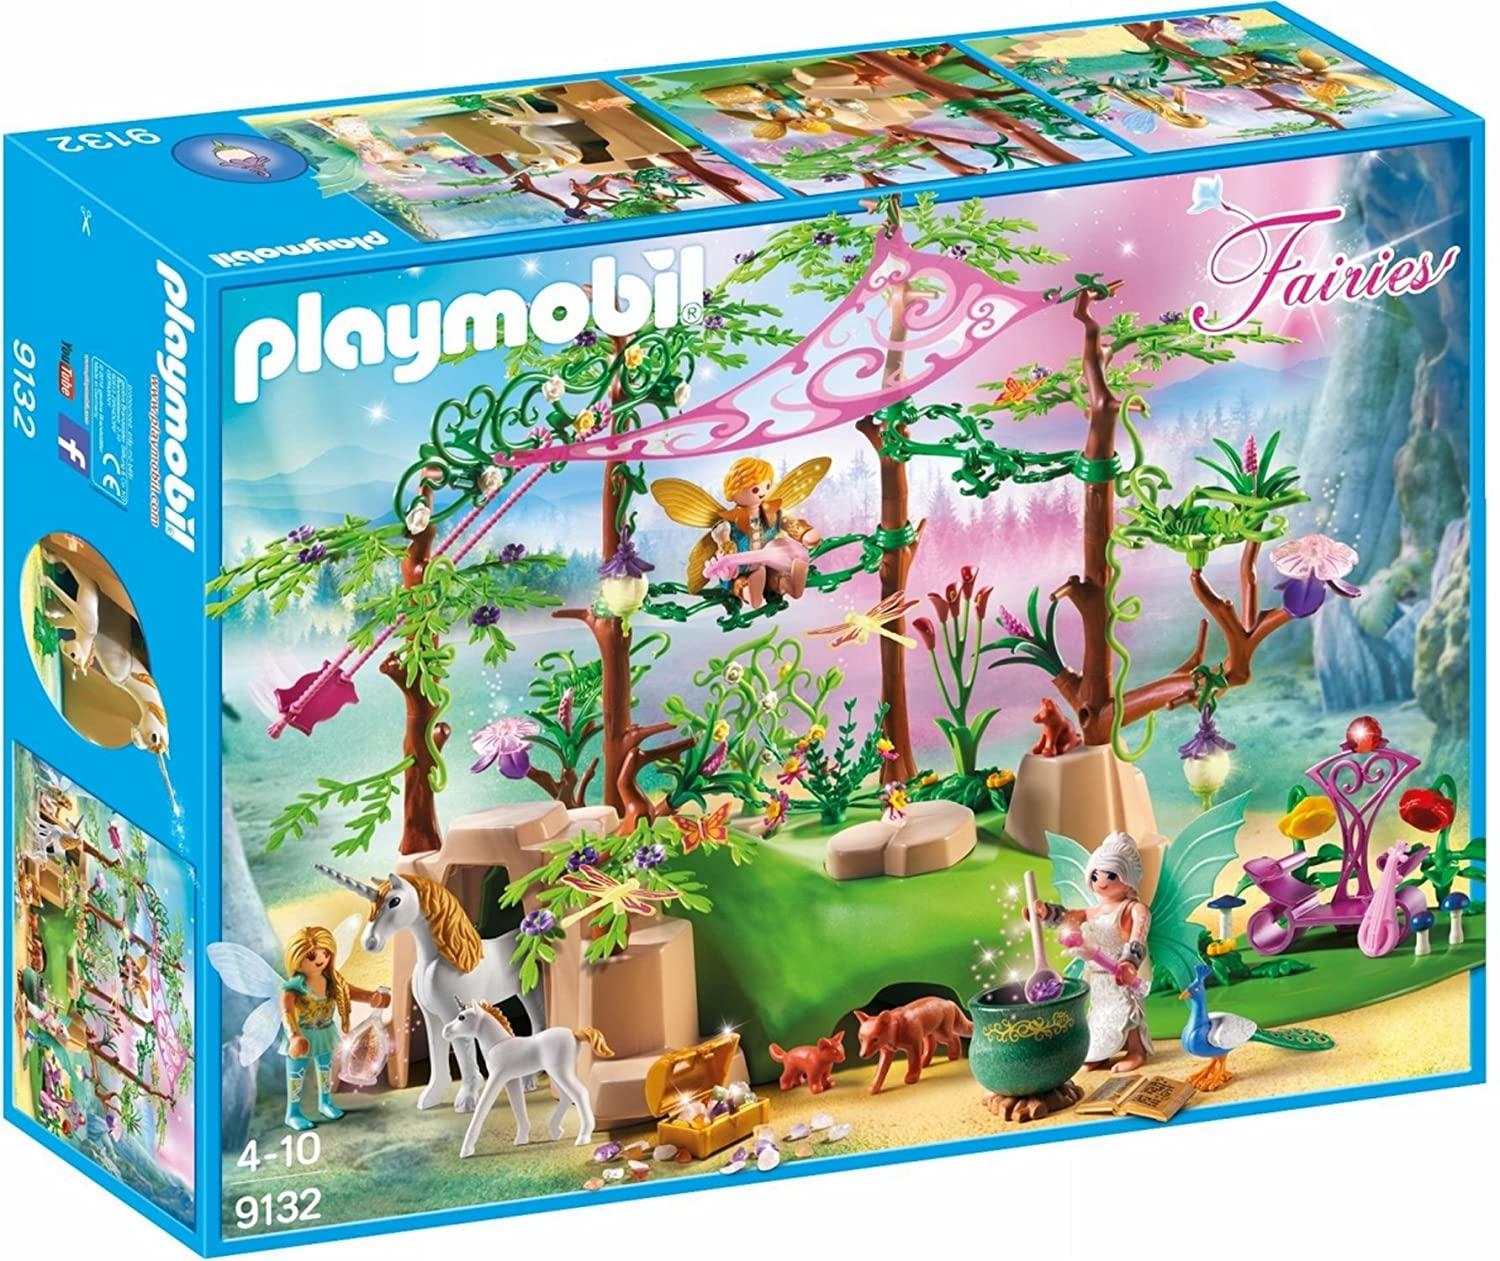 PLAYMOBIL Magical Fairy Forest is one of the best toys for girls age 6 to 8